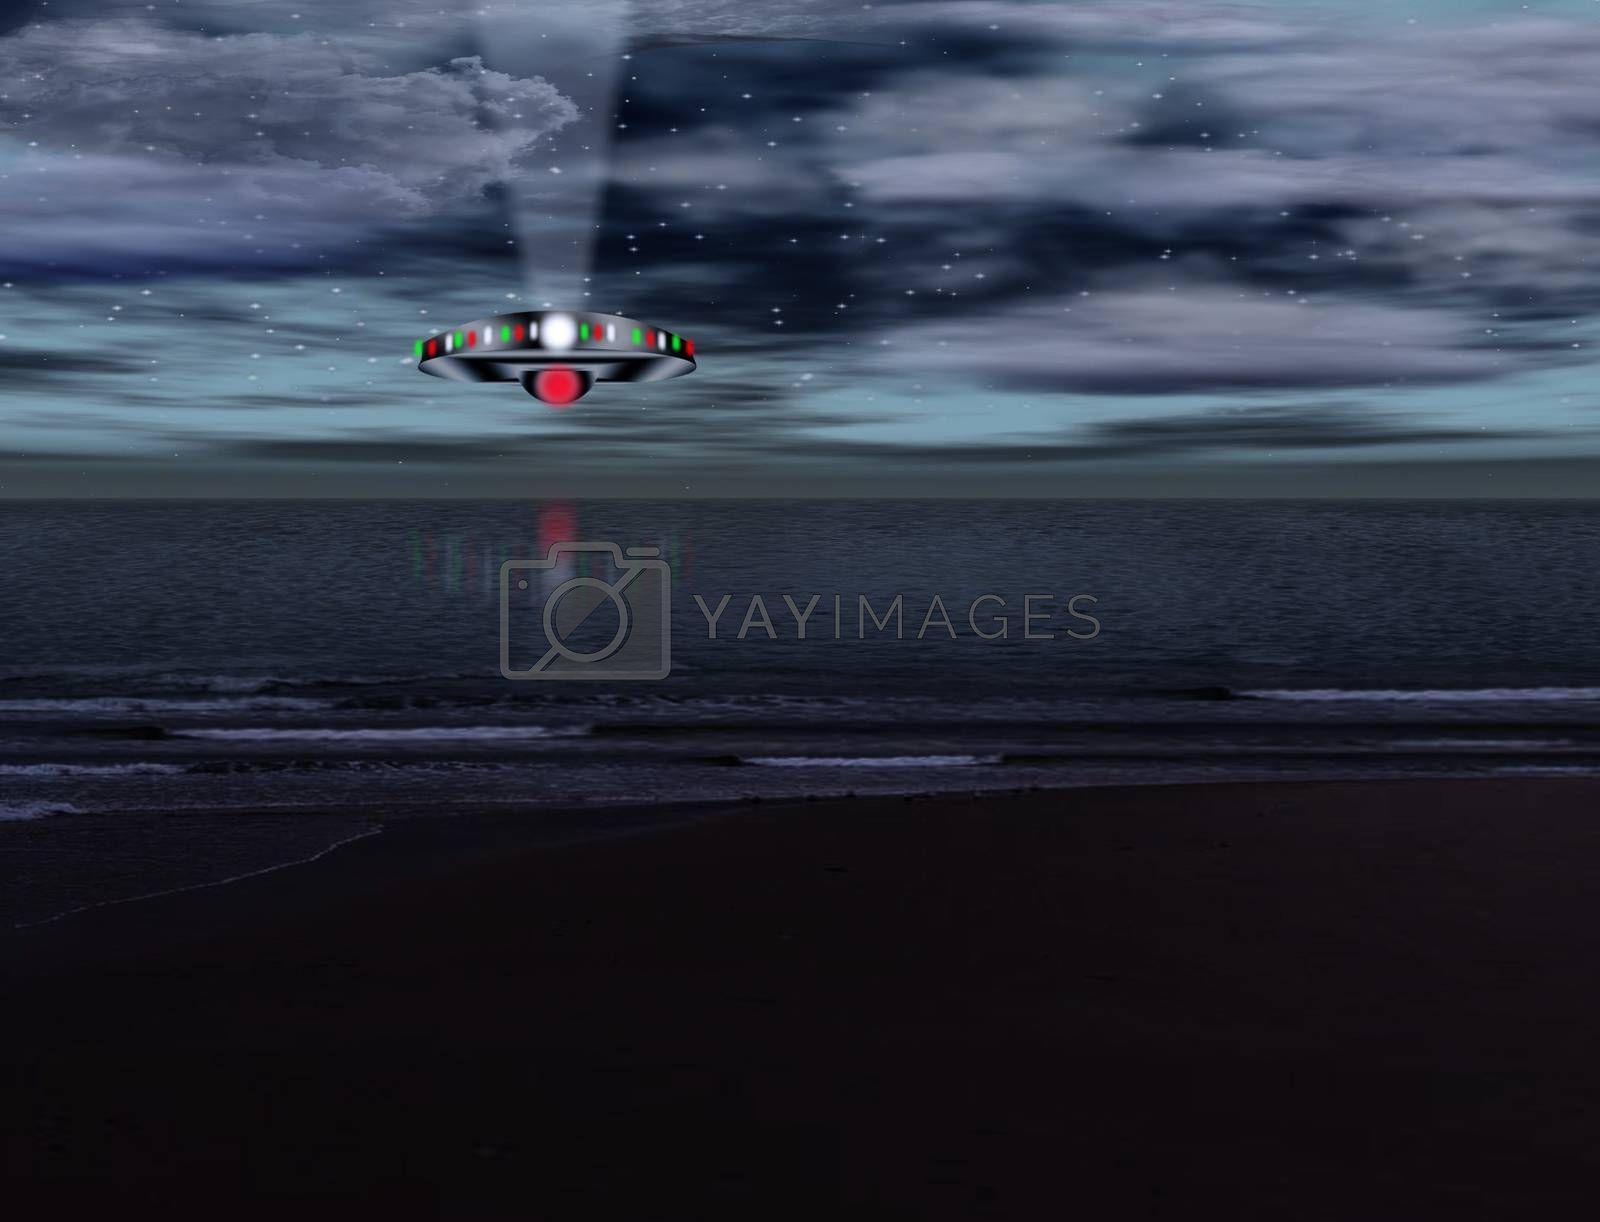 UFO hovers over seascape